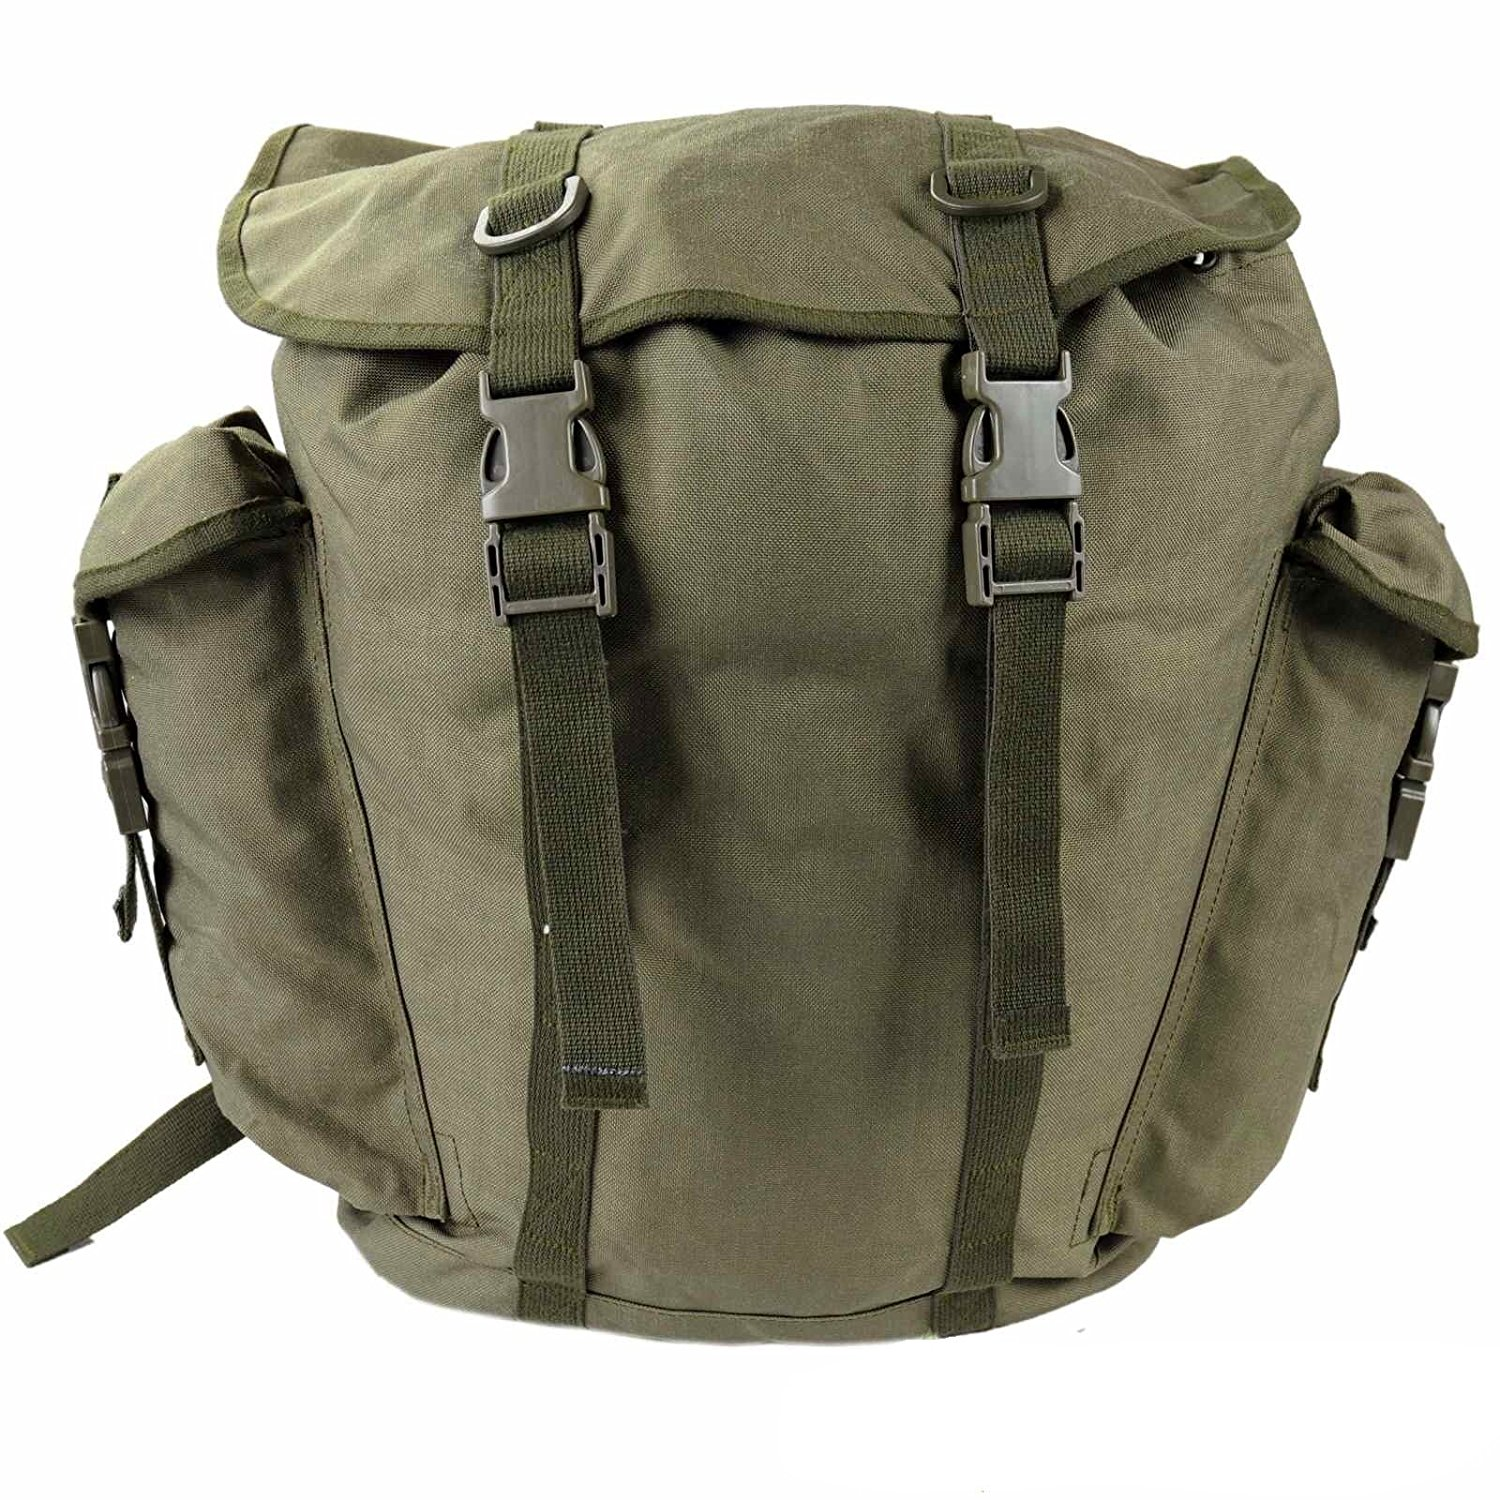 3cbf01580b04 Buy German Army Issue Mountain Rucksack in Cheap Price on Alibaba.com